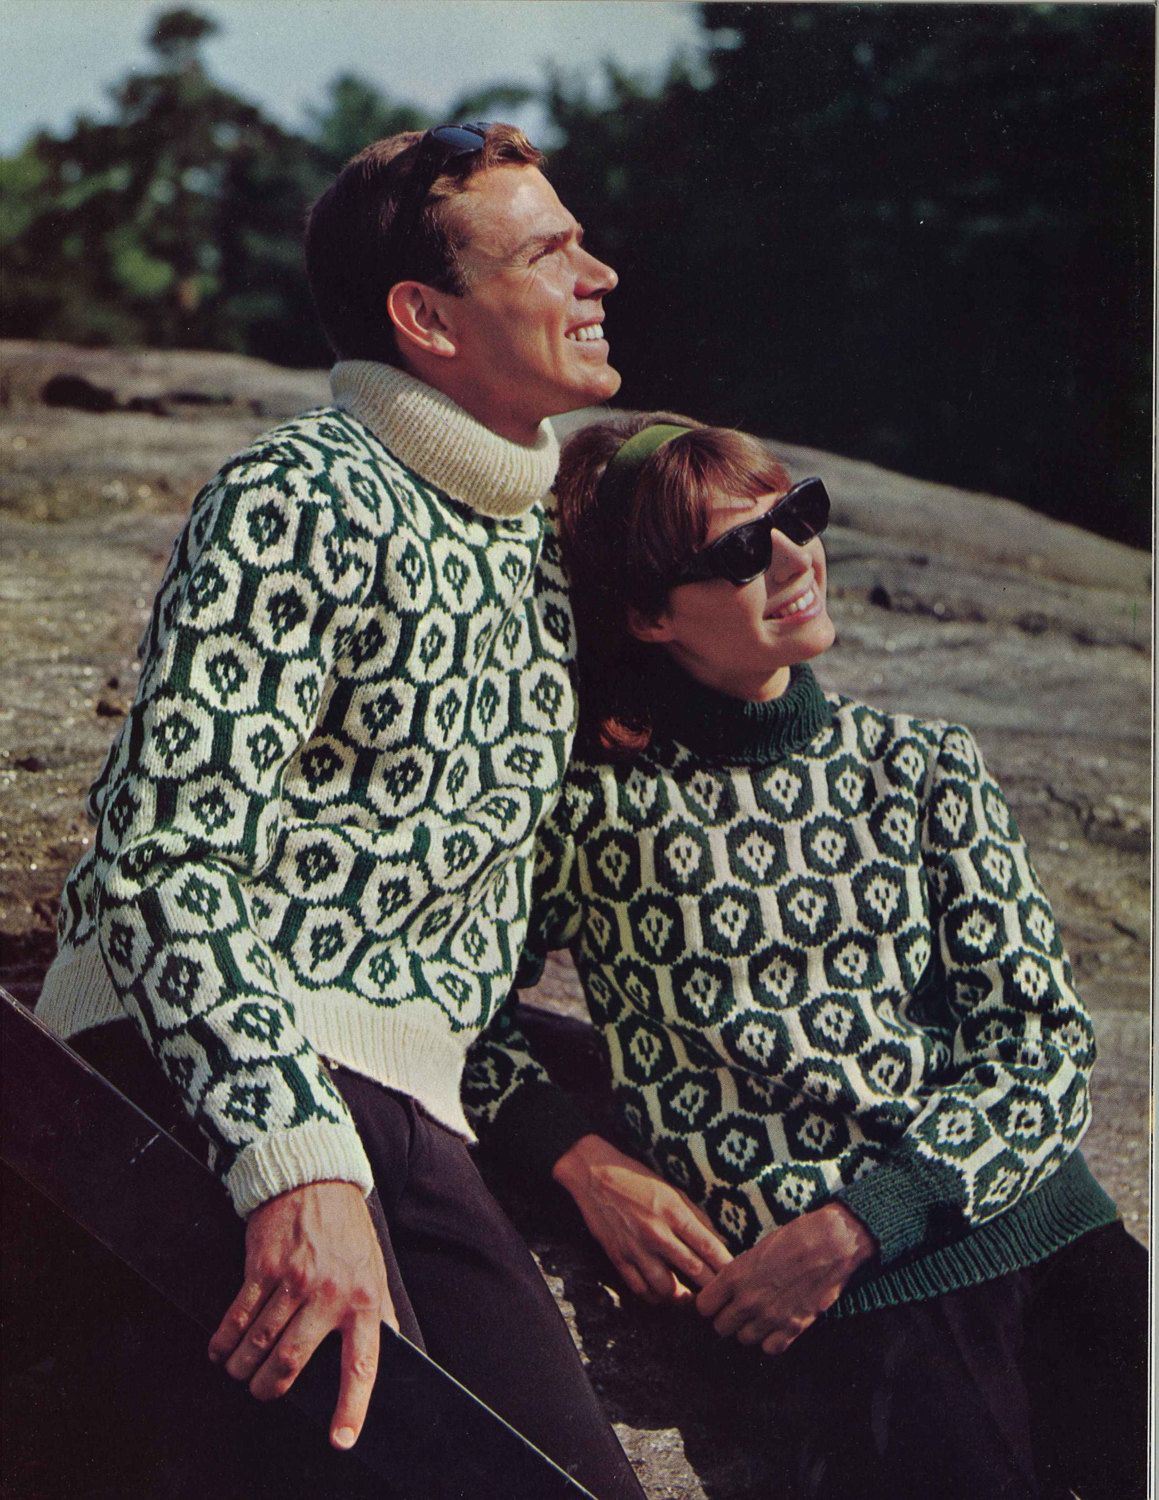 Emerald thistle 1960s fair isle colorwork pullover sweater emerald thistle 1960s fair isle colorwork pullover sweater patterns 60s vintage knitting pattern bankloansurffo Choice Image